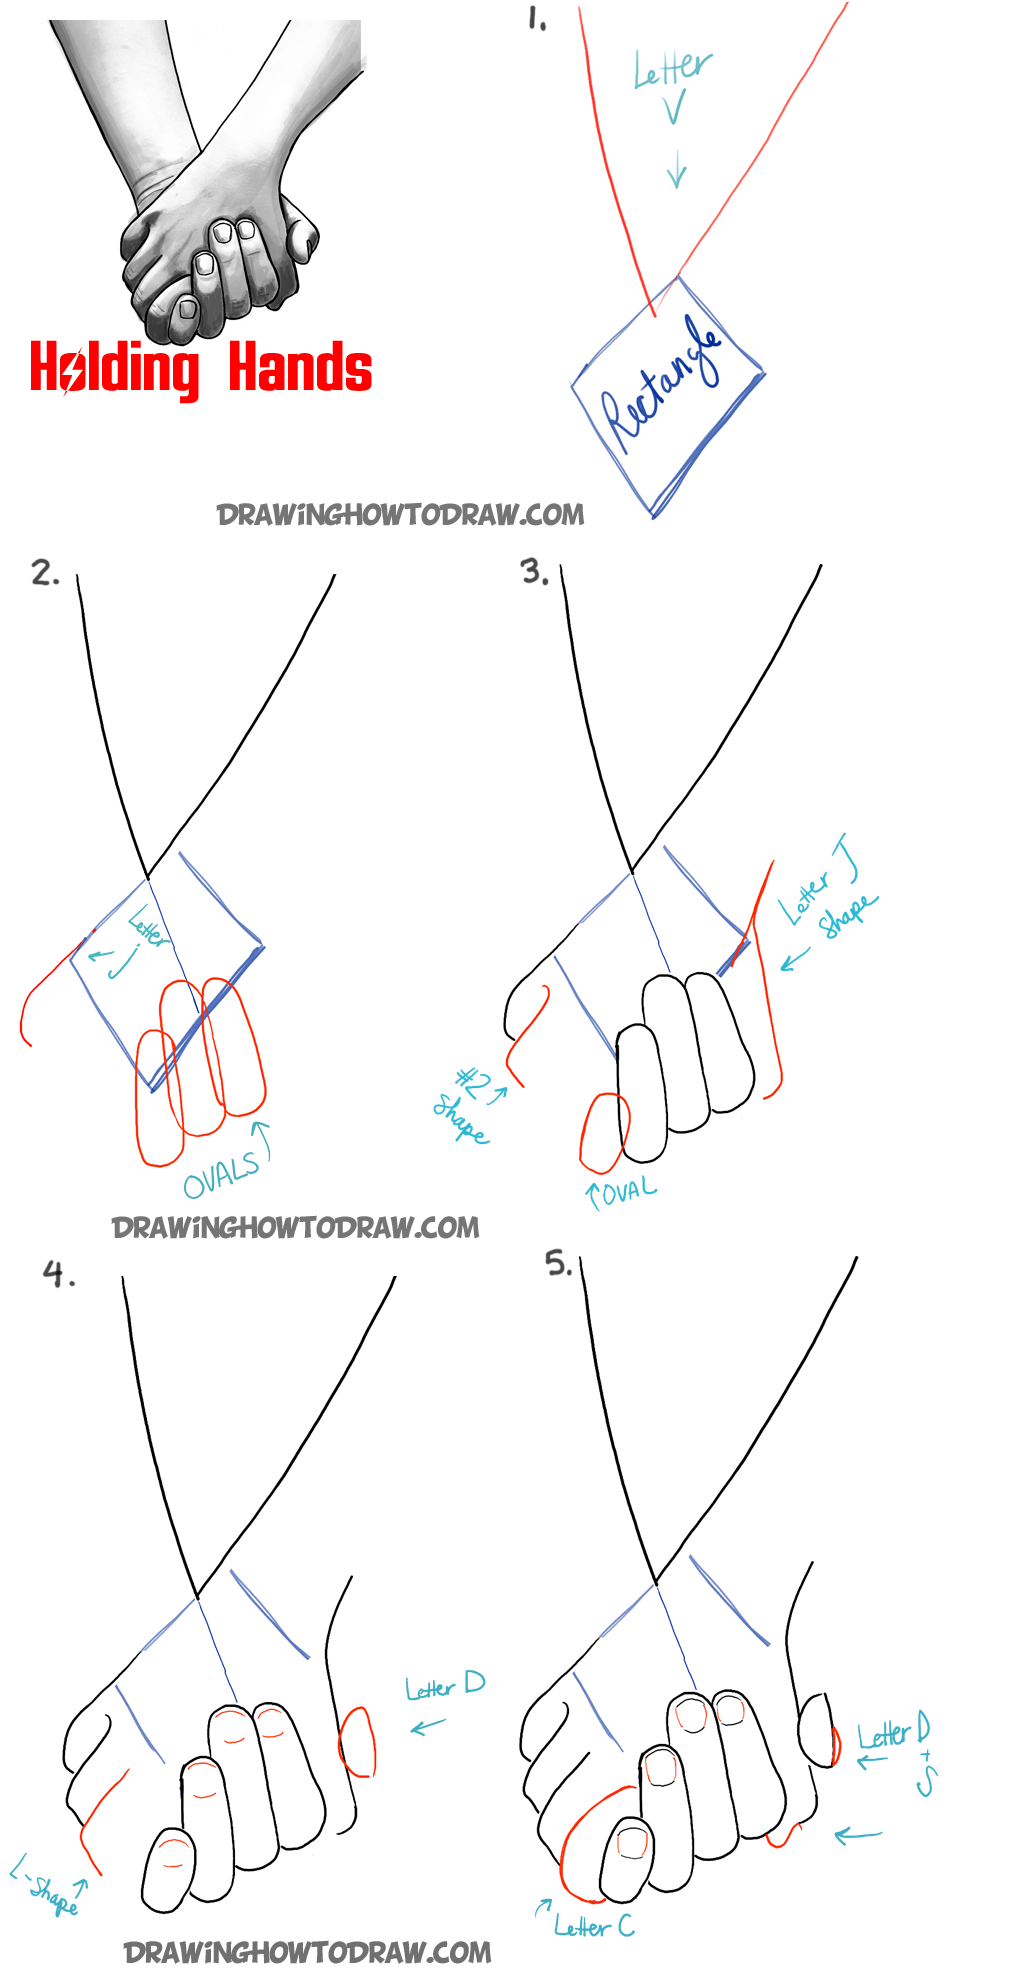 Drawing Holding Hands : drawing, holding, hands, Holding, Hands, Drawing, Tutorial, Tutorials